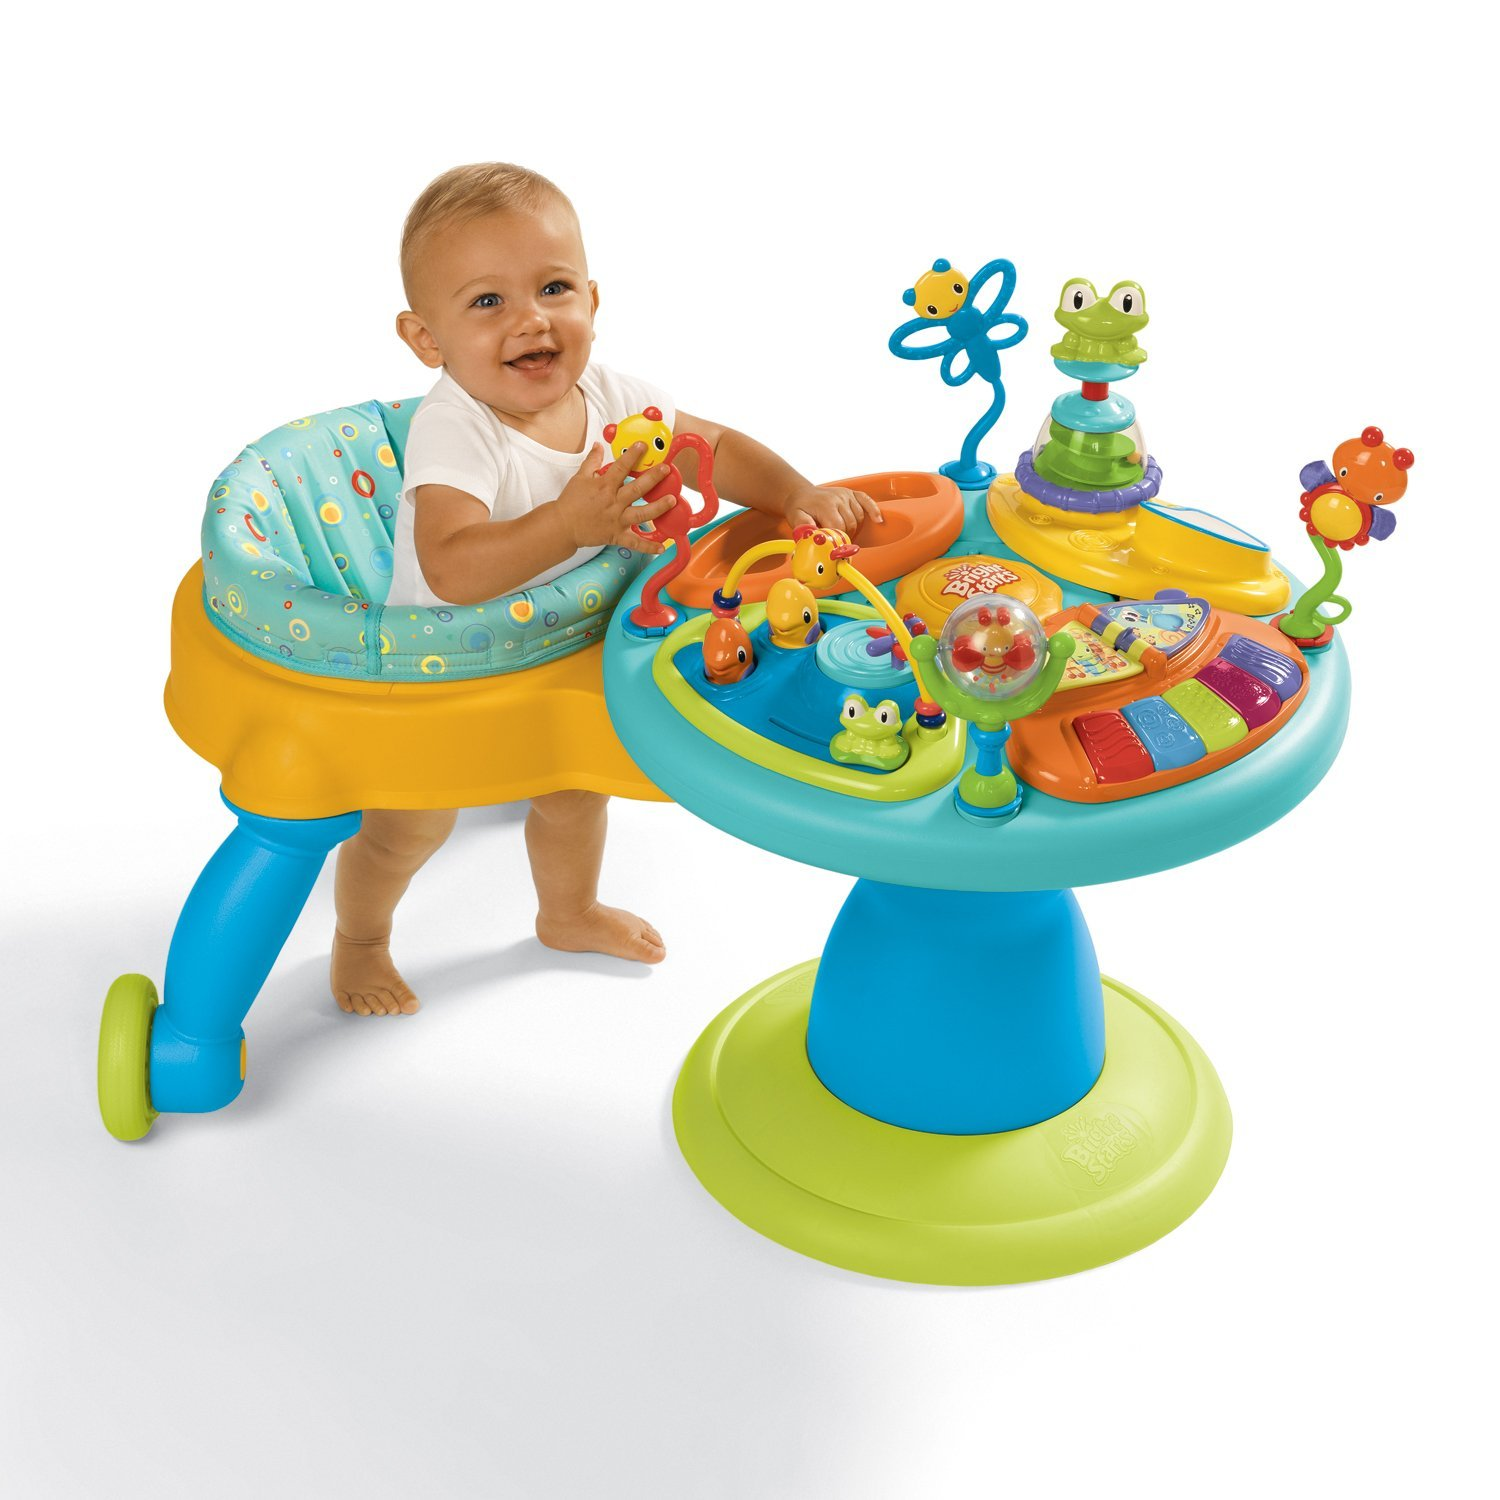 Perfect Bright Starts around We Go Activity Station 1500 x 1500 · 177 kB · jpeg